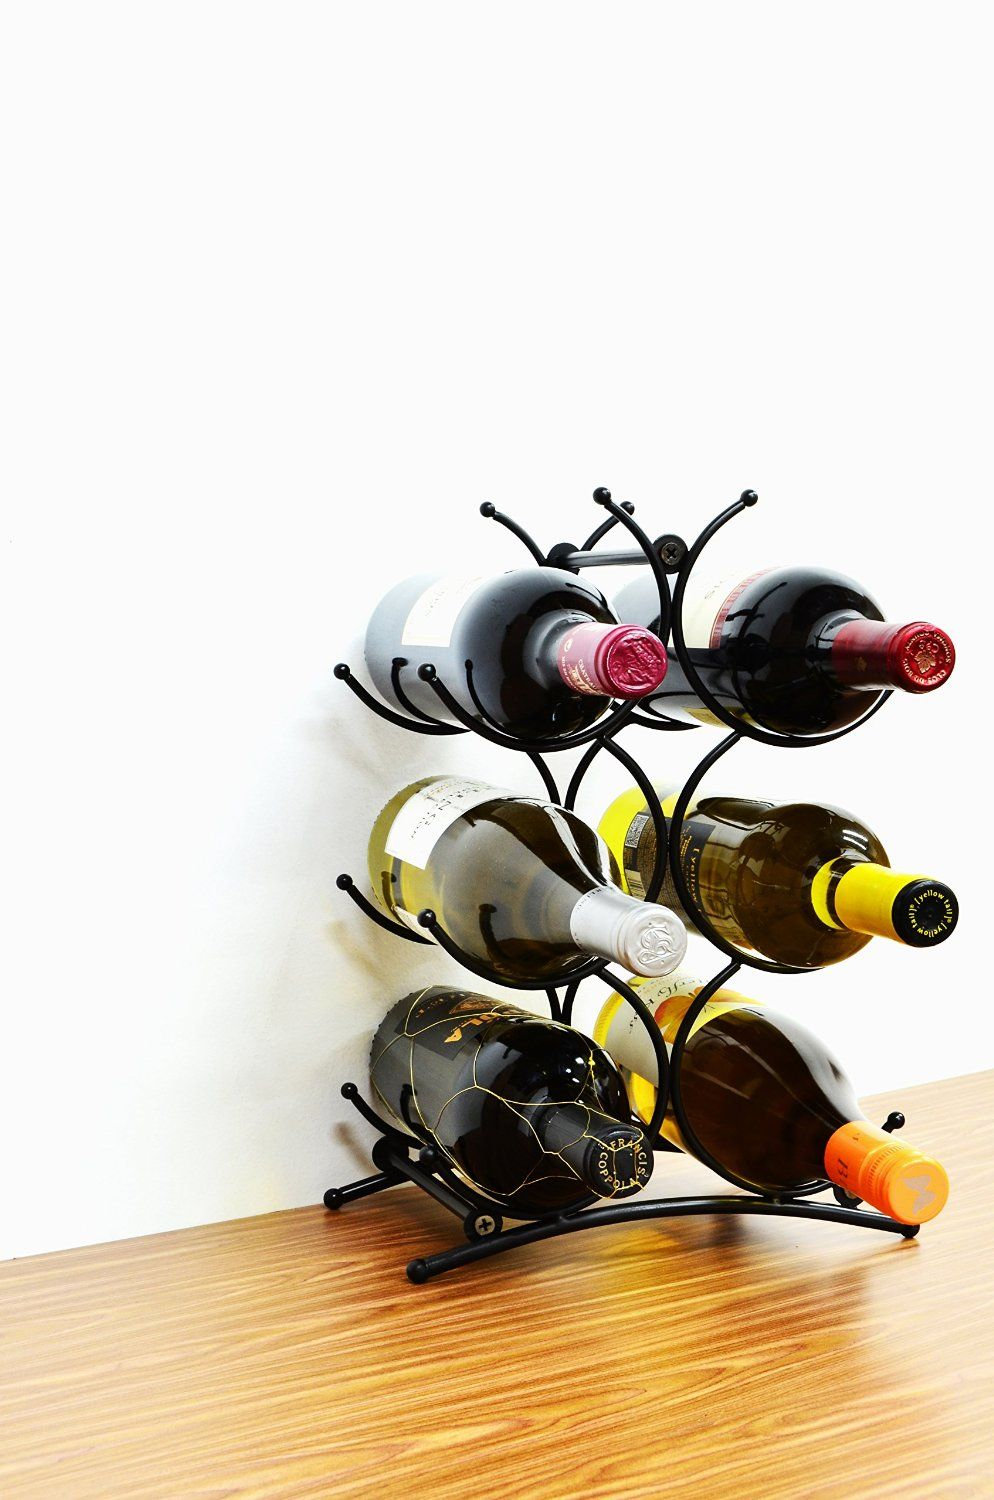 Superiore Livello Turin Wine Rack 6 Bottle Countertop Metal Wine